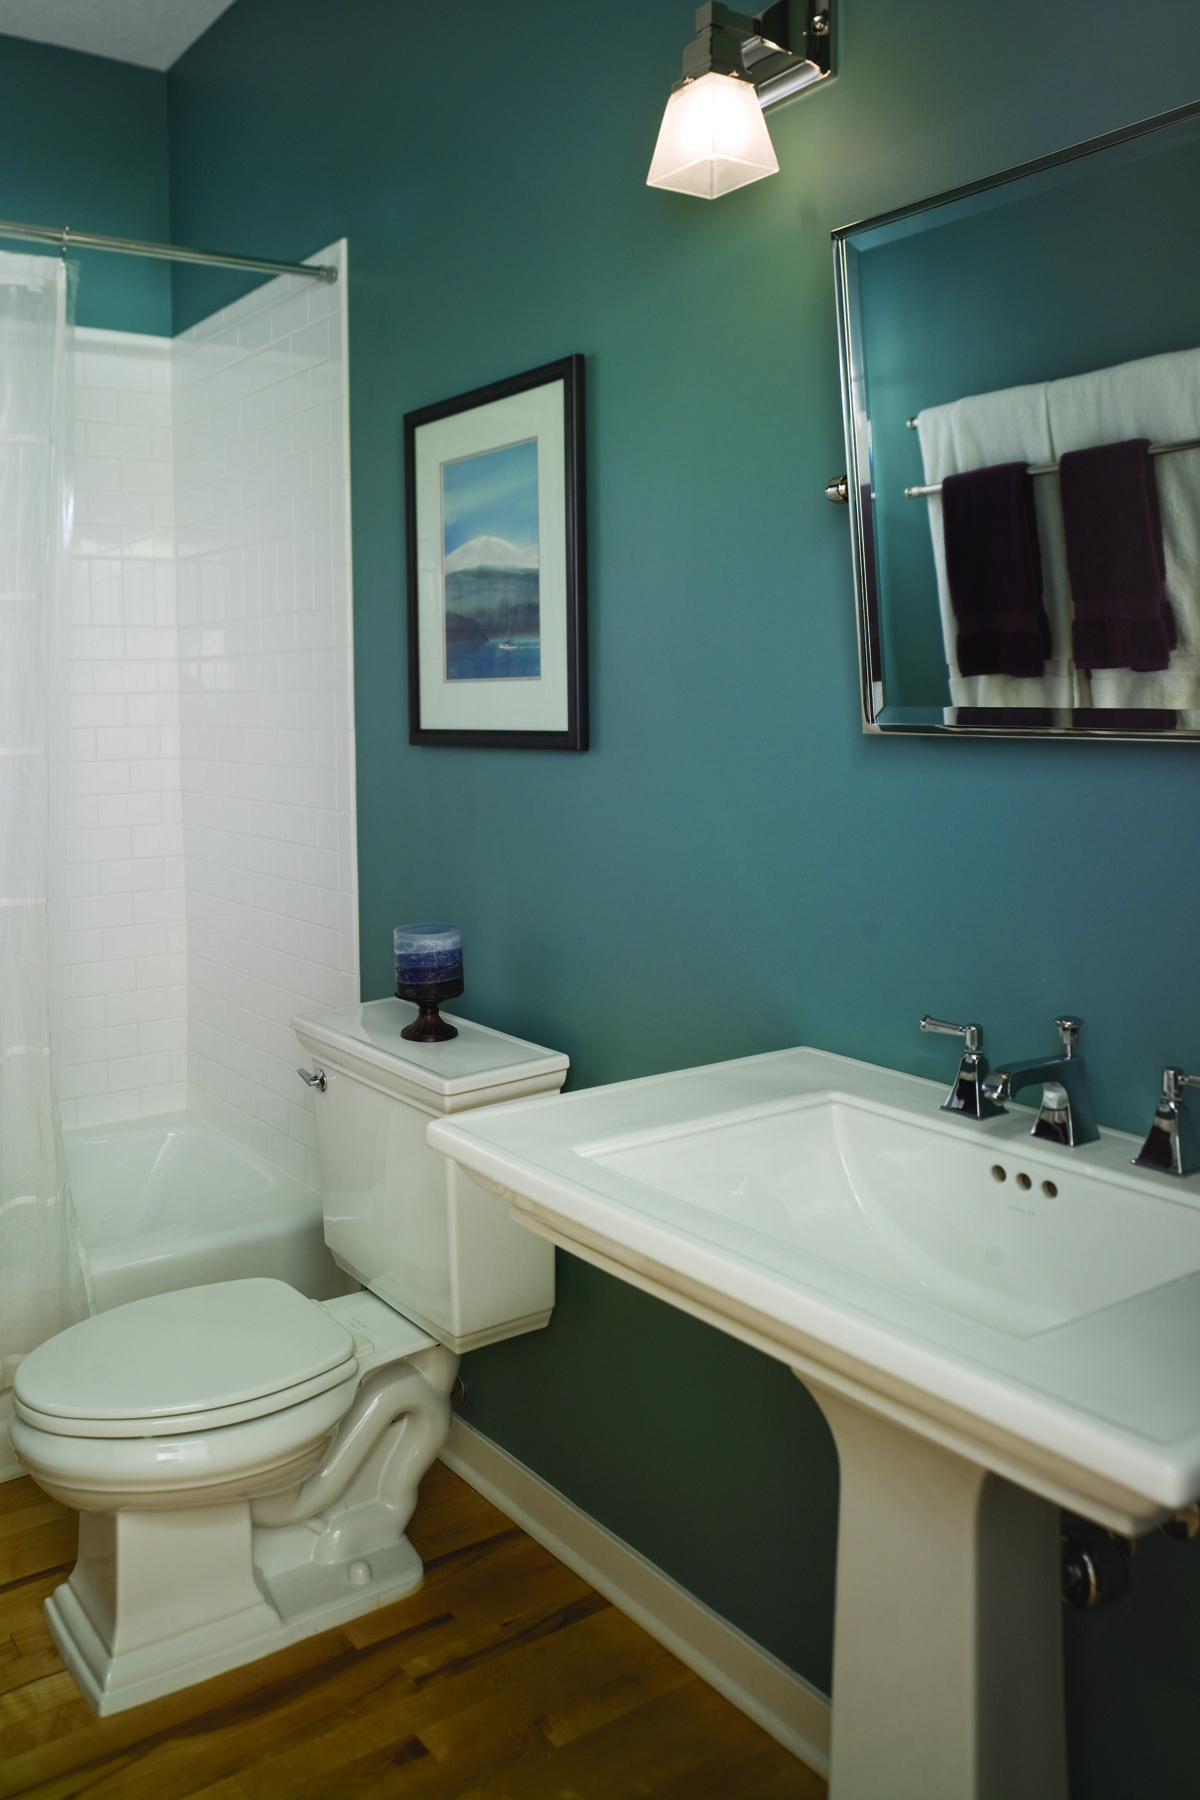 Economic Bathroom Designs Dark Wood Floors Pedestal Sink And Teal Walls Love The Combo